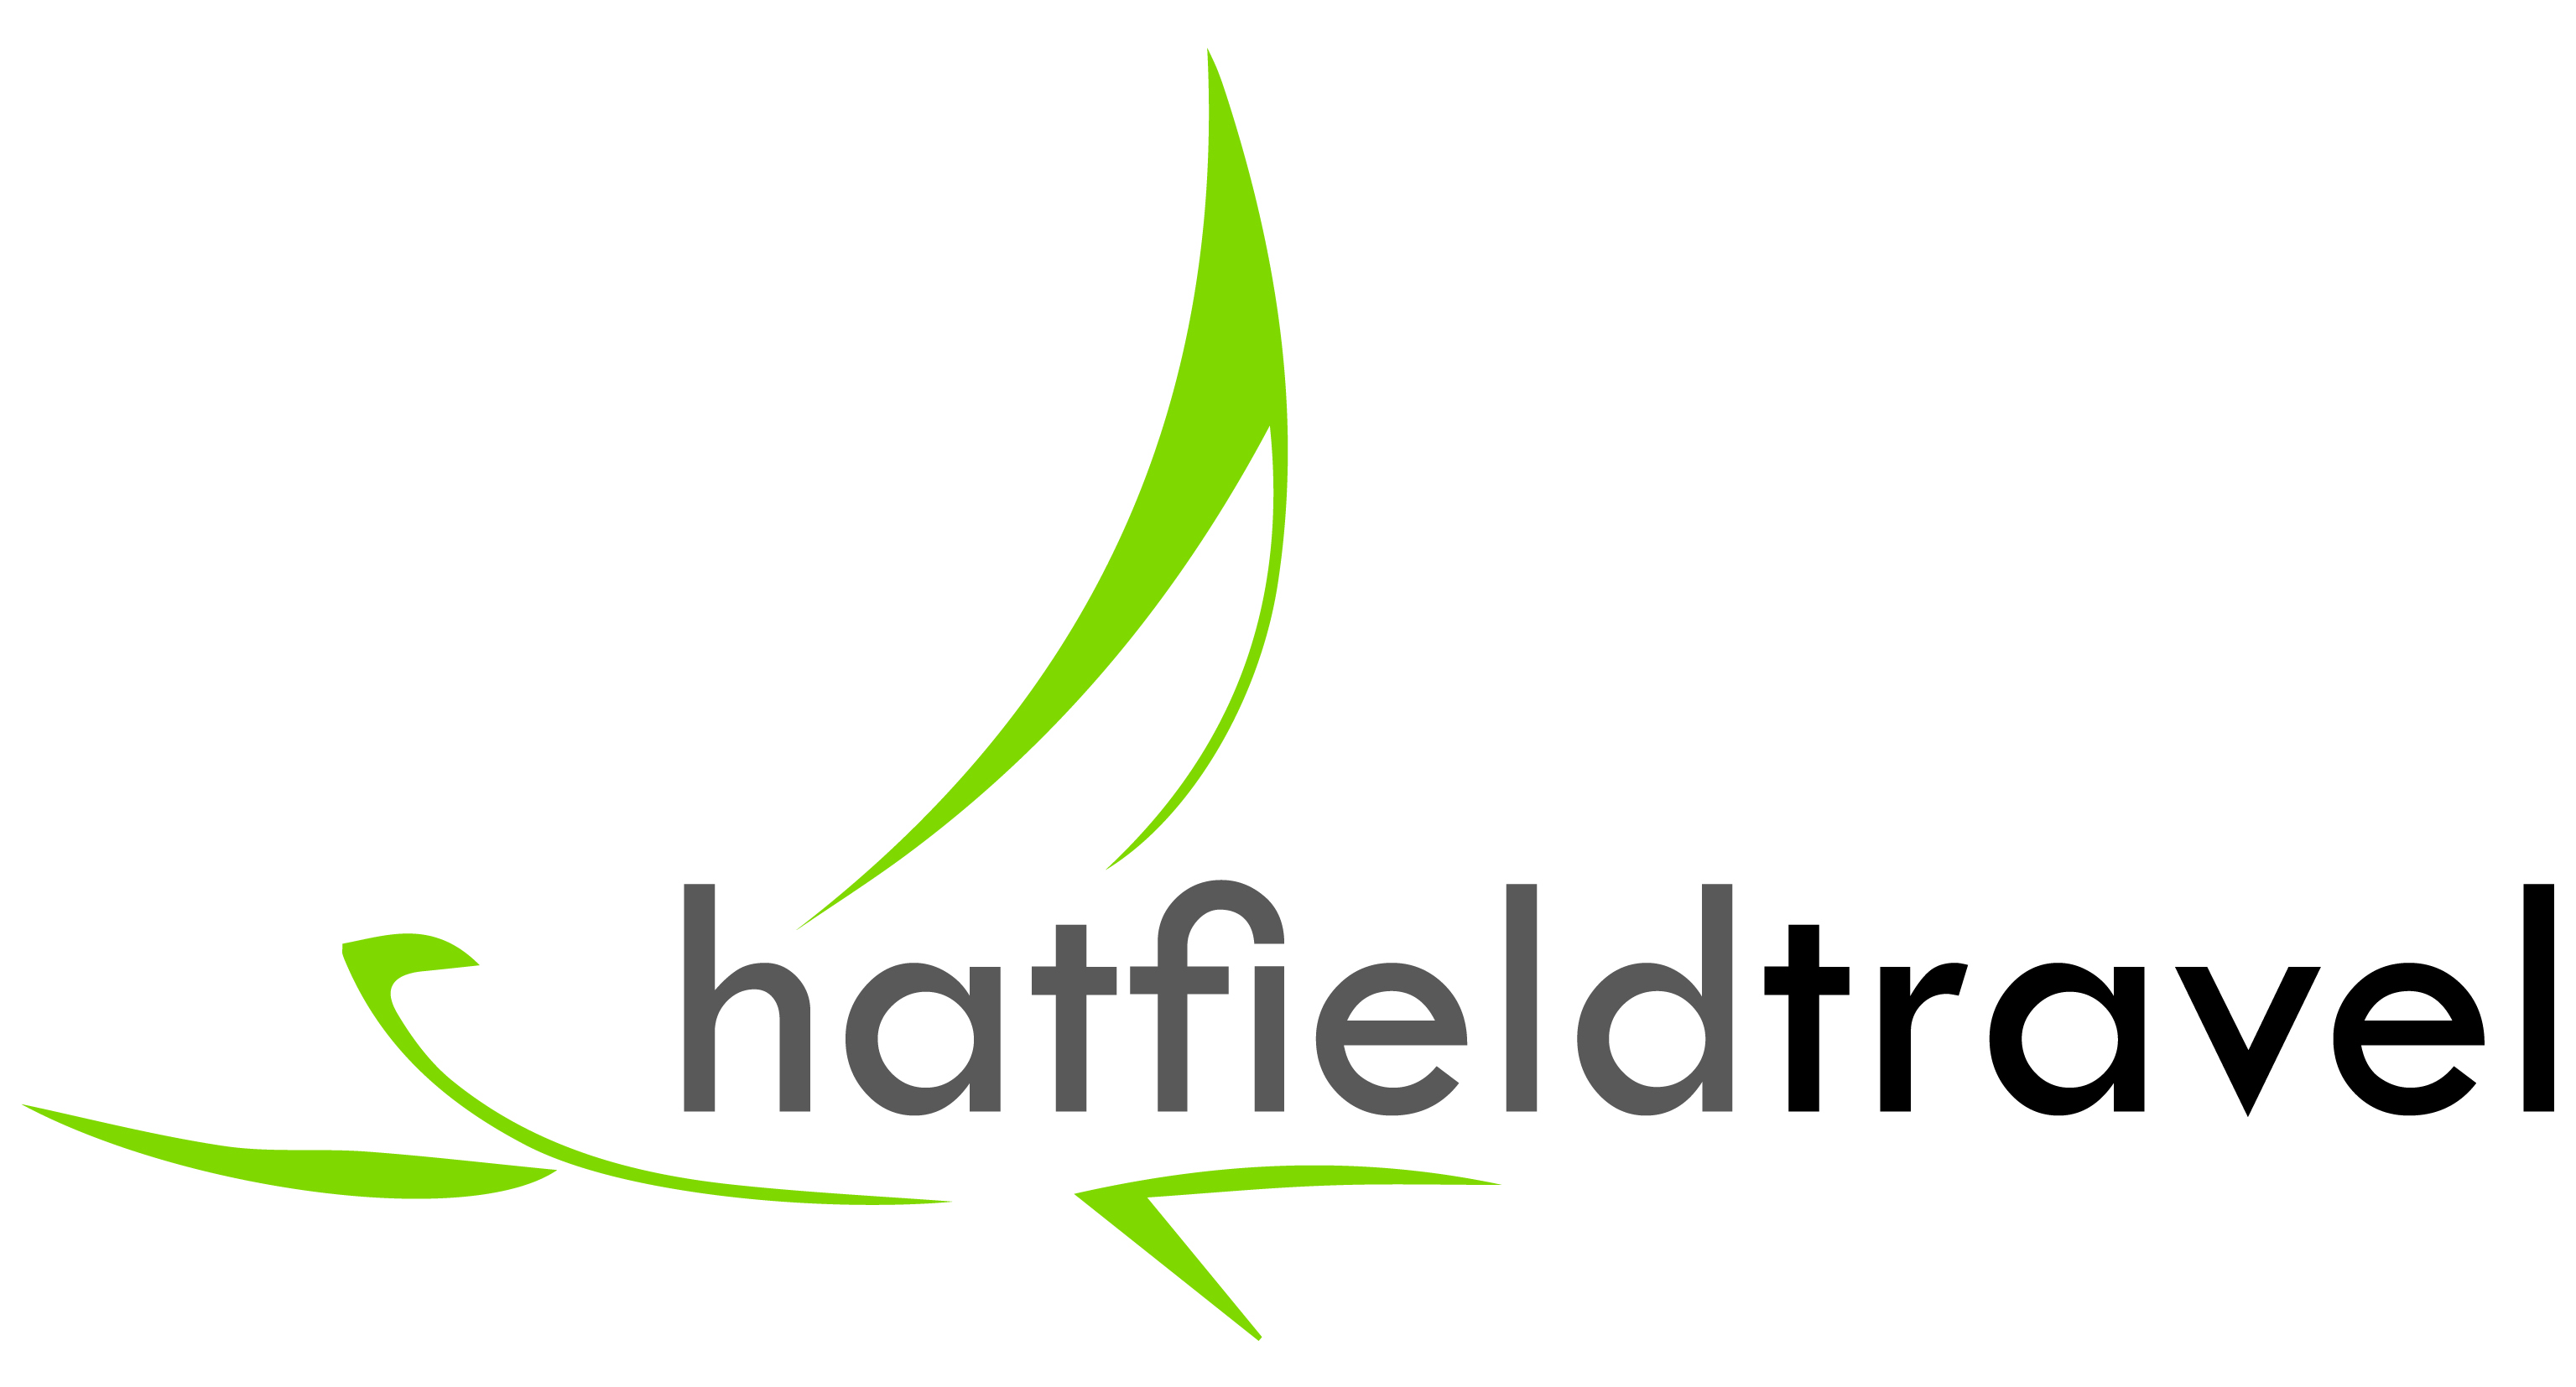 8560 Hatfield Travel Logo Hi res 2